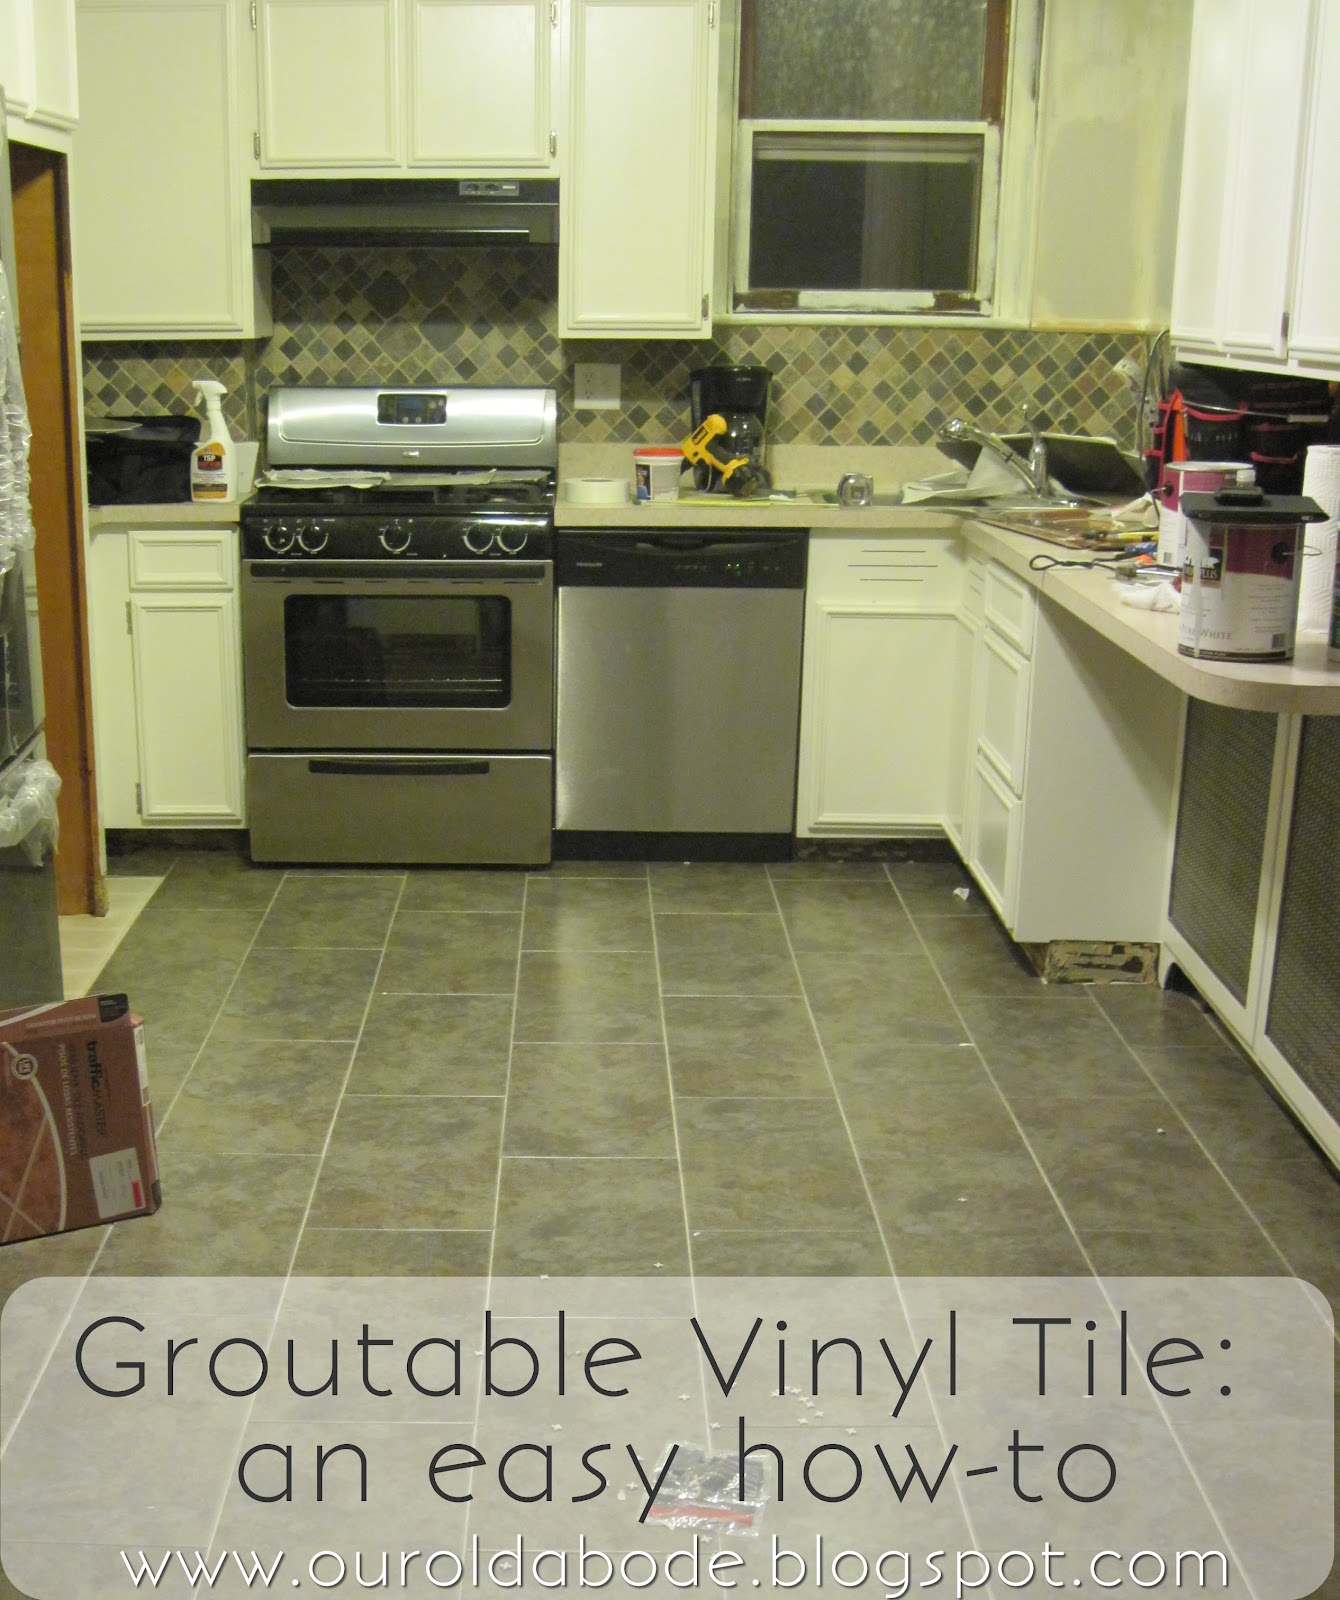 Our old abode kitchen floor groutable vinyl tile for Vinyl kitchen floor tiles